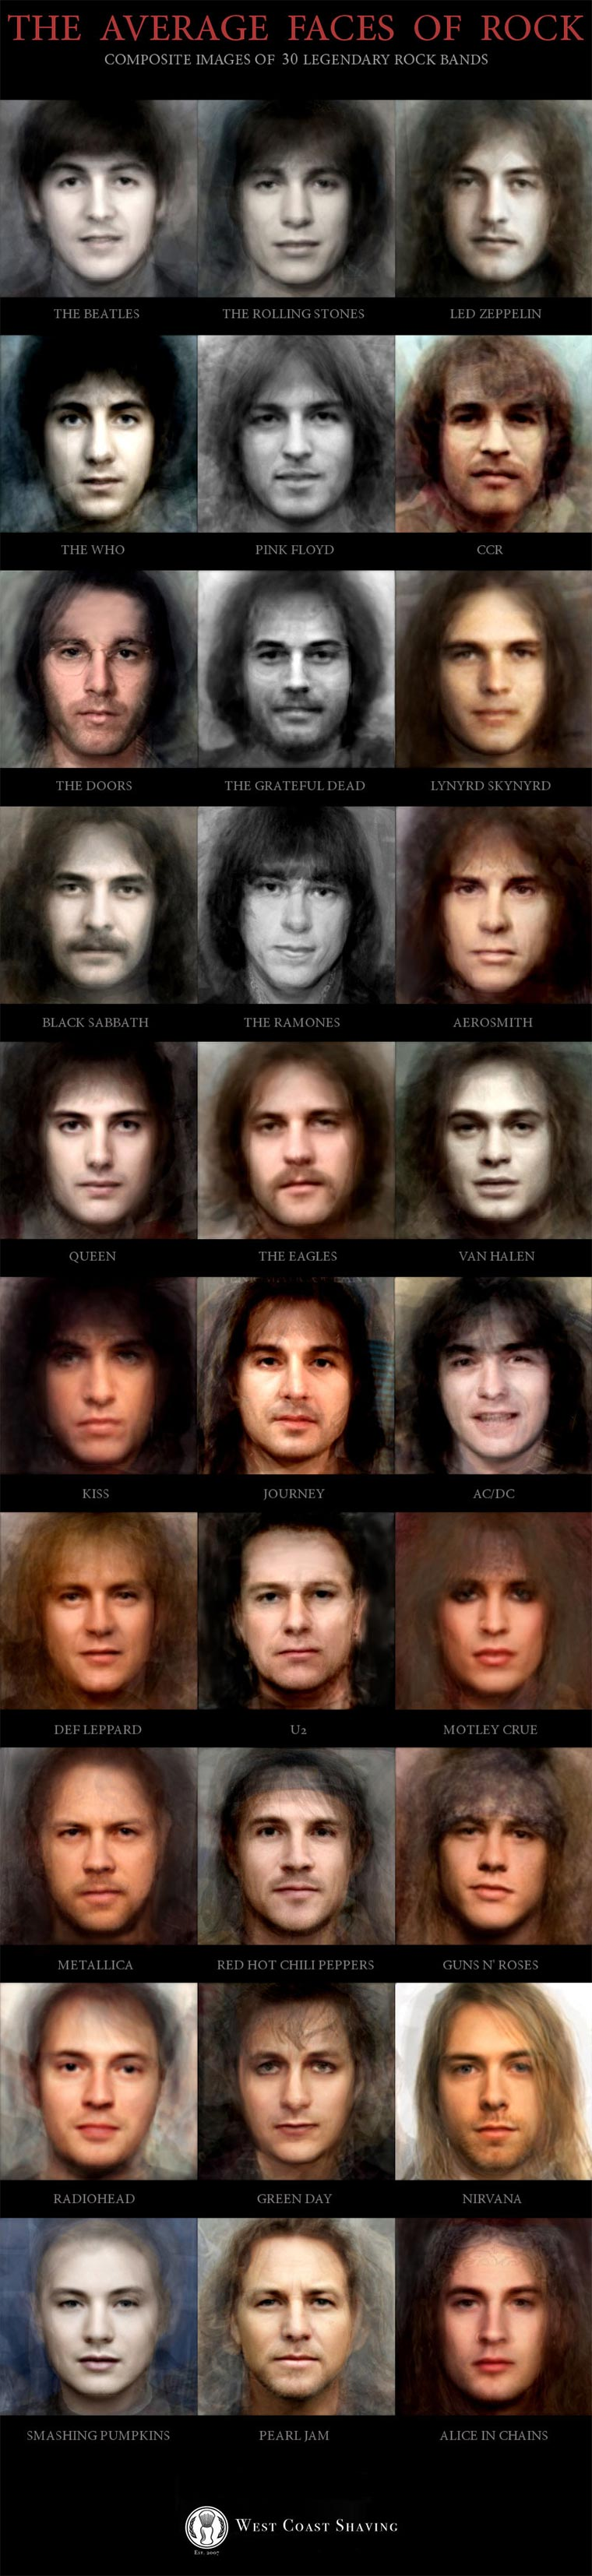 Rockbands zu einer Person gemorpht faces-of-rock_02